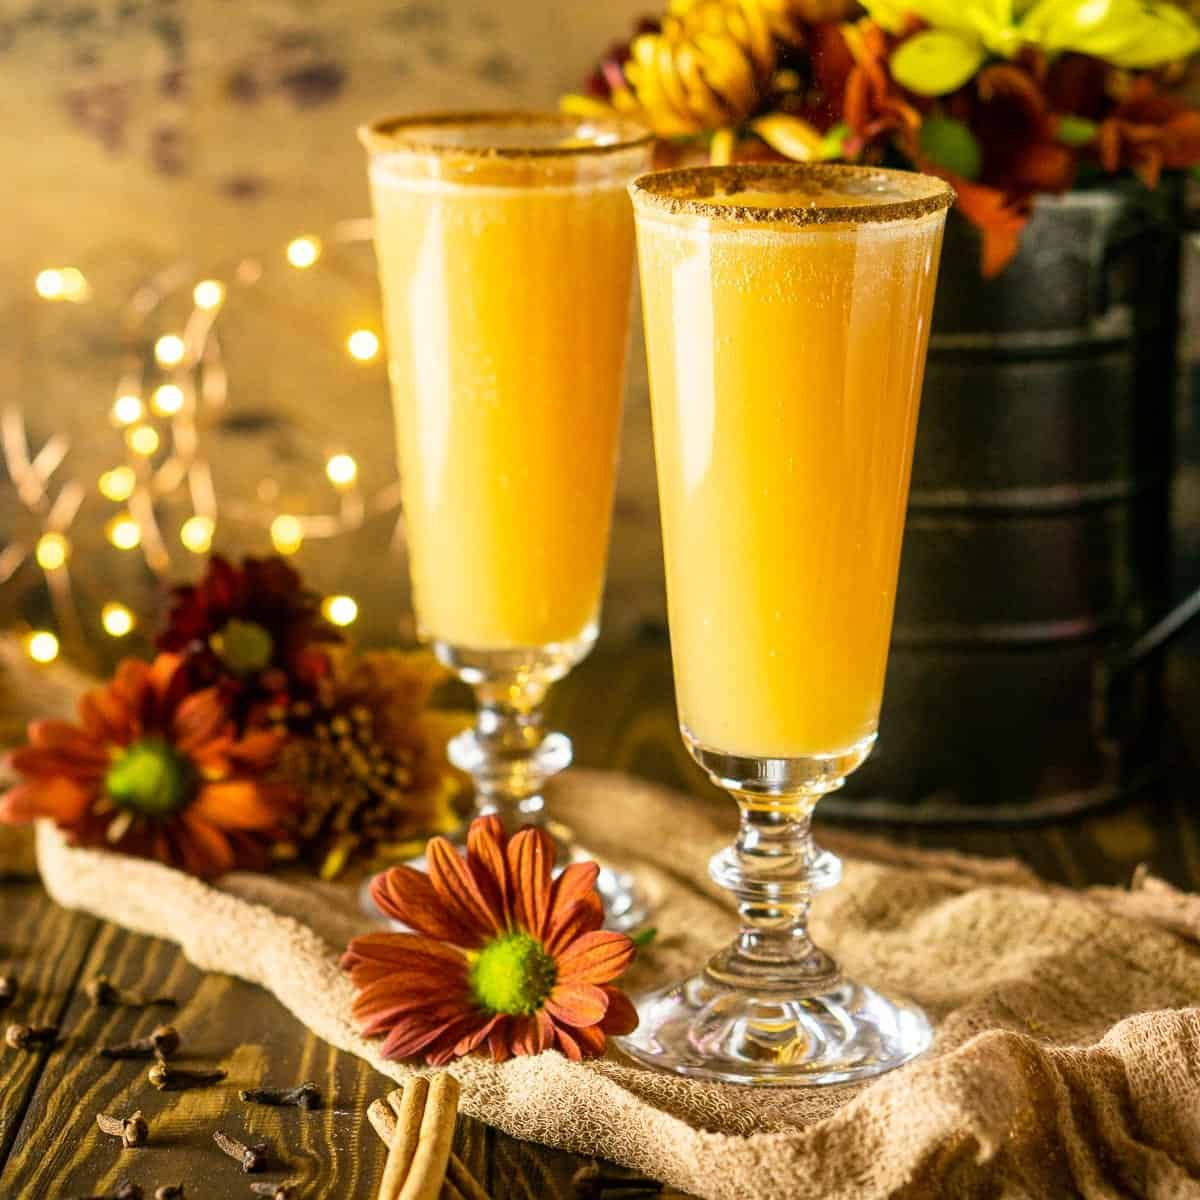 Two Thanksgiving mimosas with fall flowers and lights behind it with cinnamon sticks and cloves to the side.